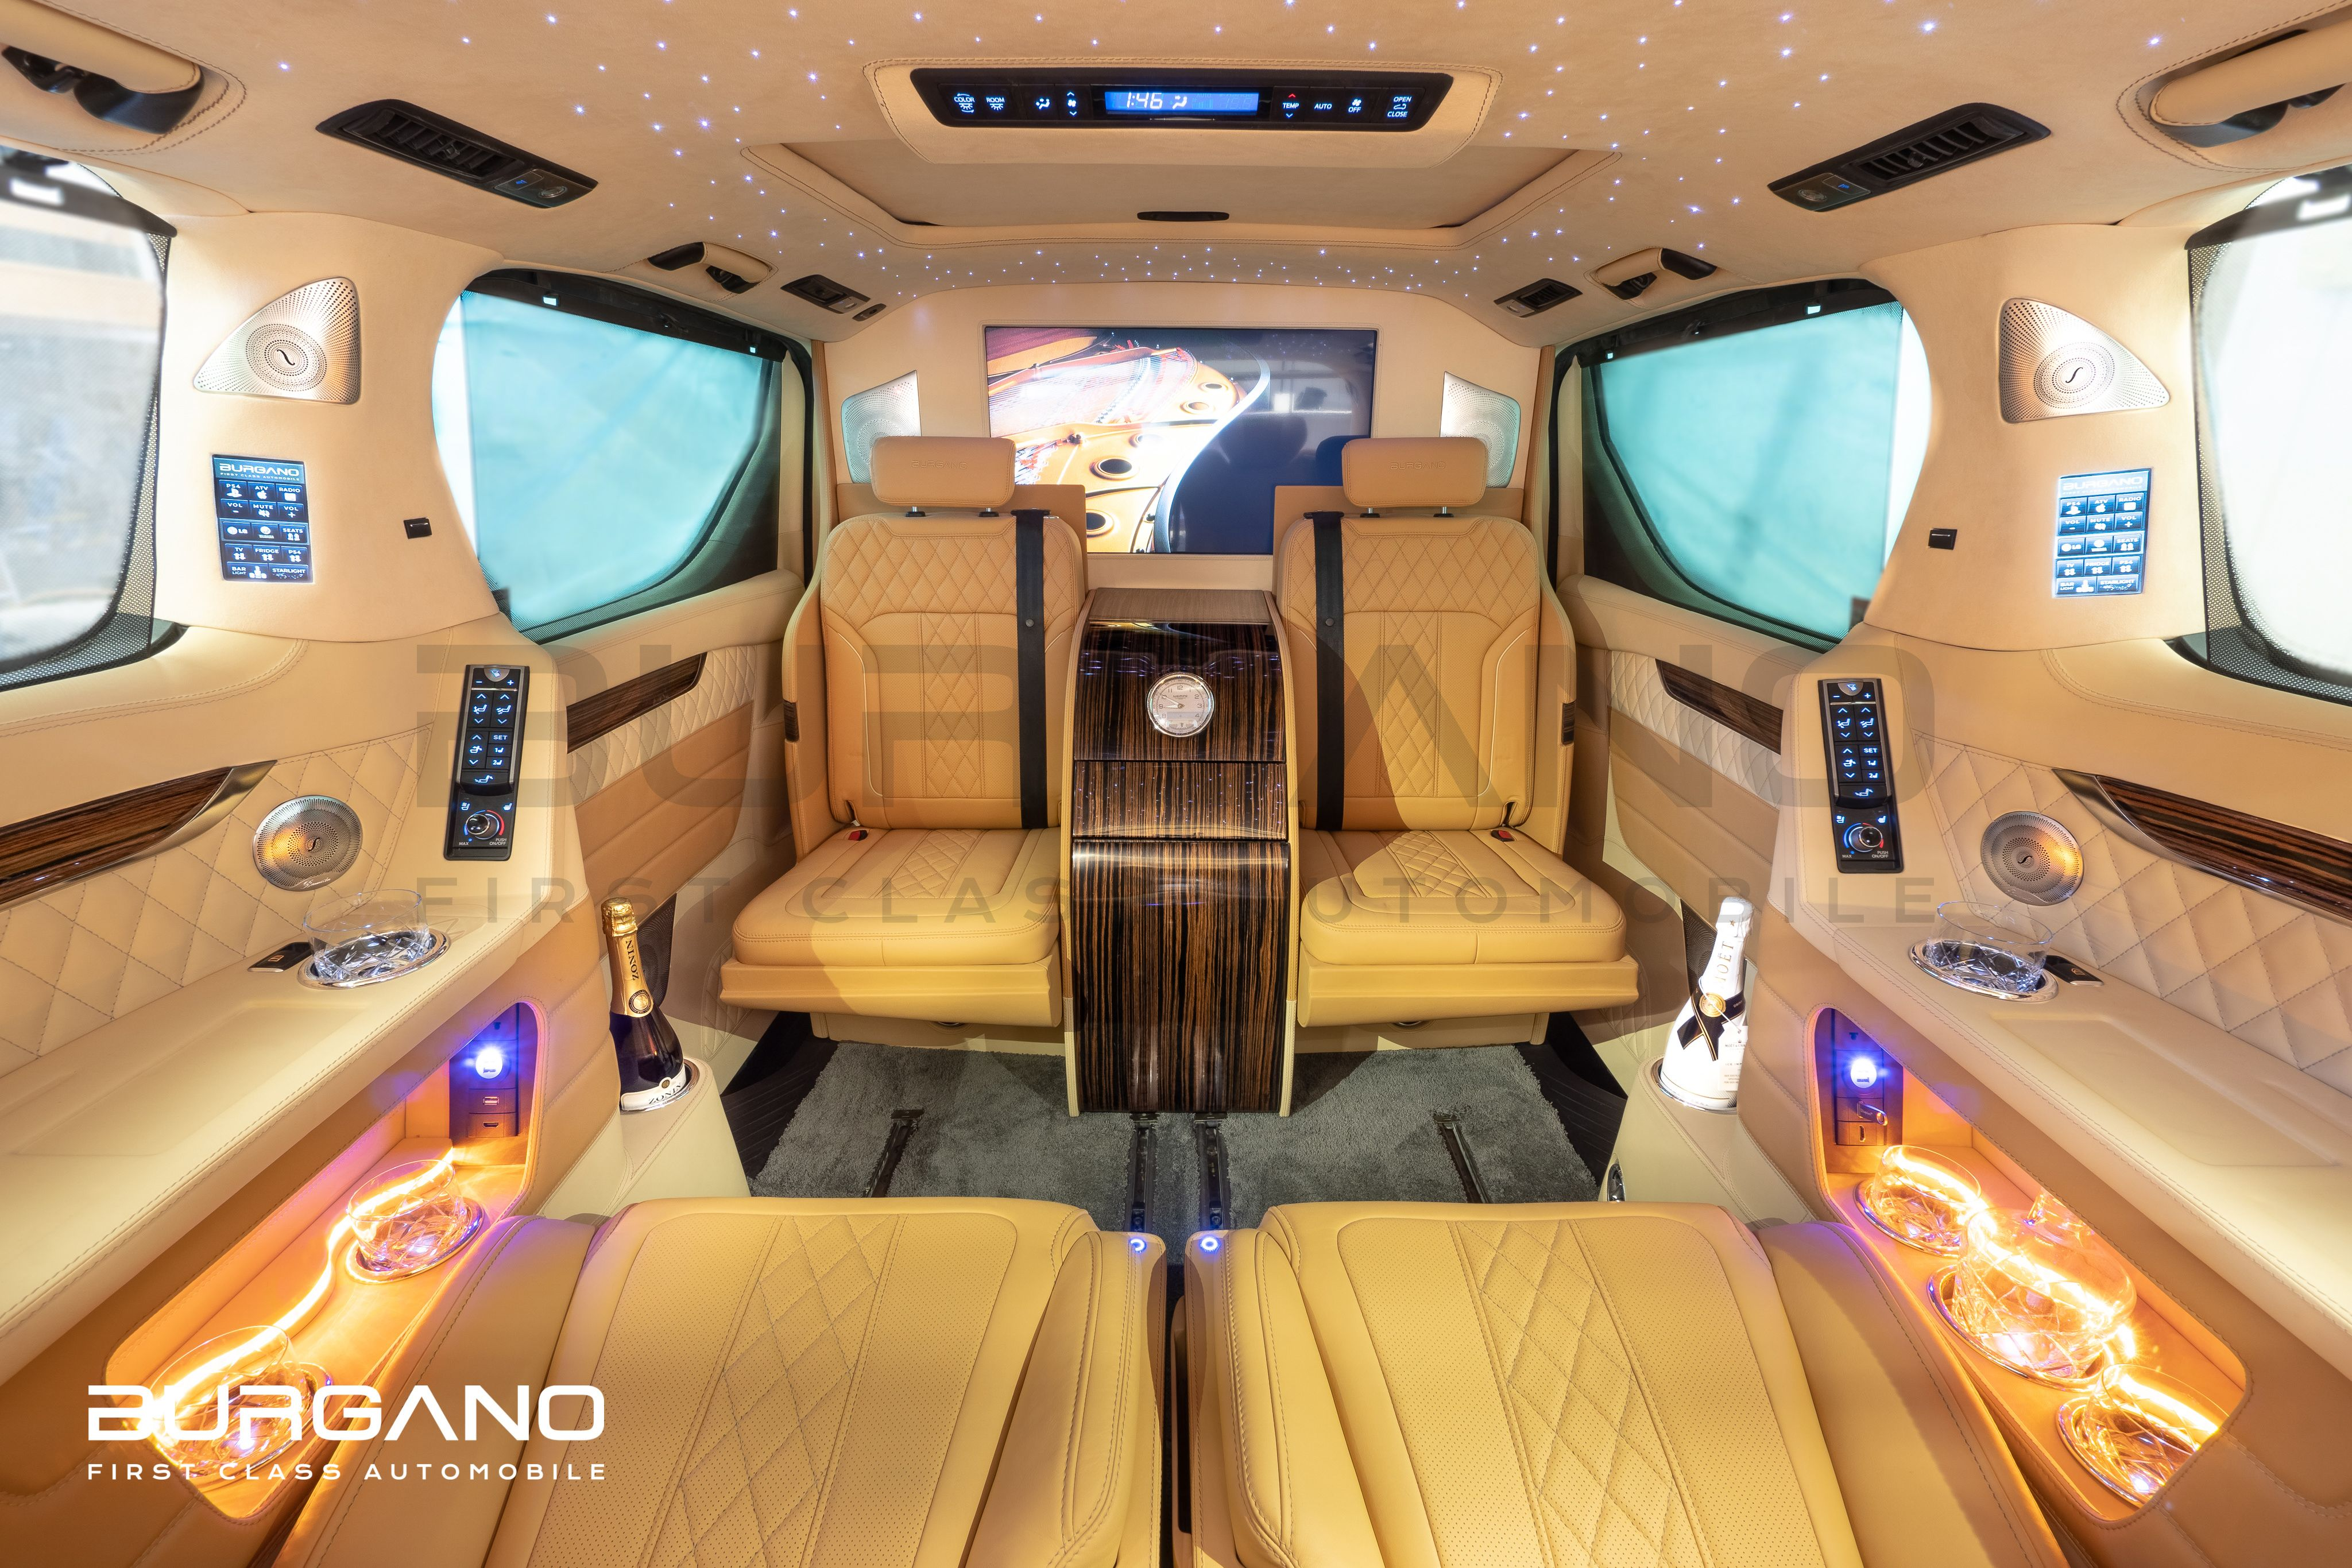 New Exclusive Toyota Alphard First Class Lounge By Burgano Exclusive Bentley Nappa Leather Upholstery Precious Toyota Alphard Toyota Mercedes Benz Viano